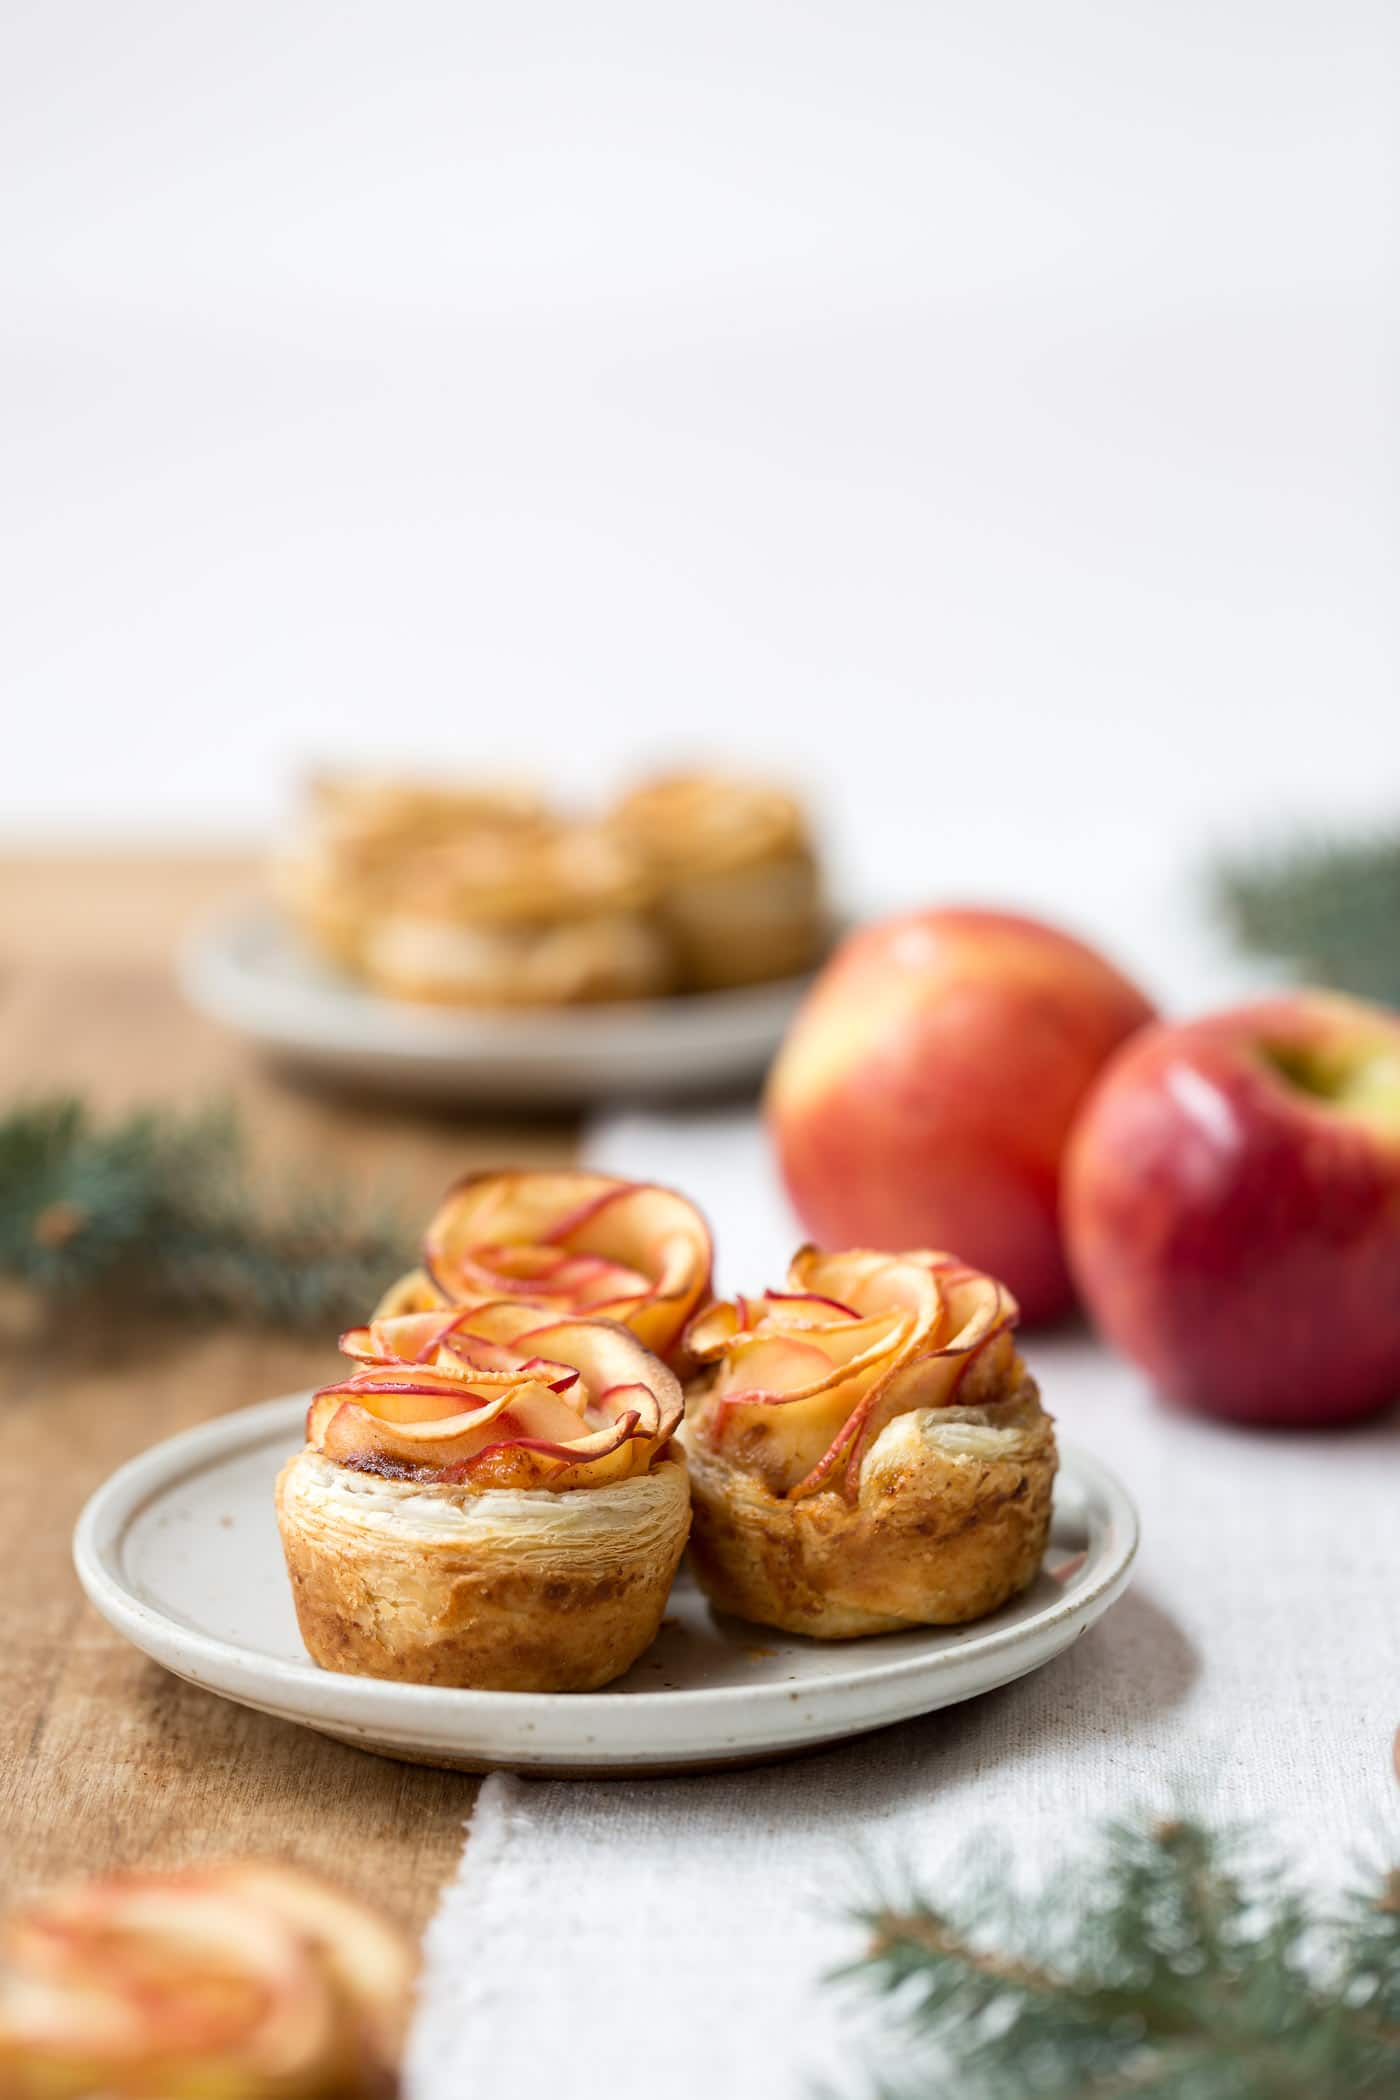 How to make apple roses - Showcasing the leaves of freshly baked apple roses served on small plates.